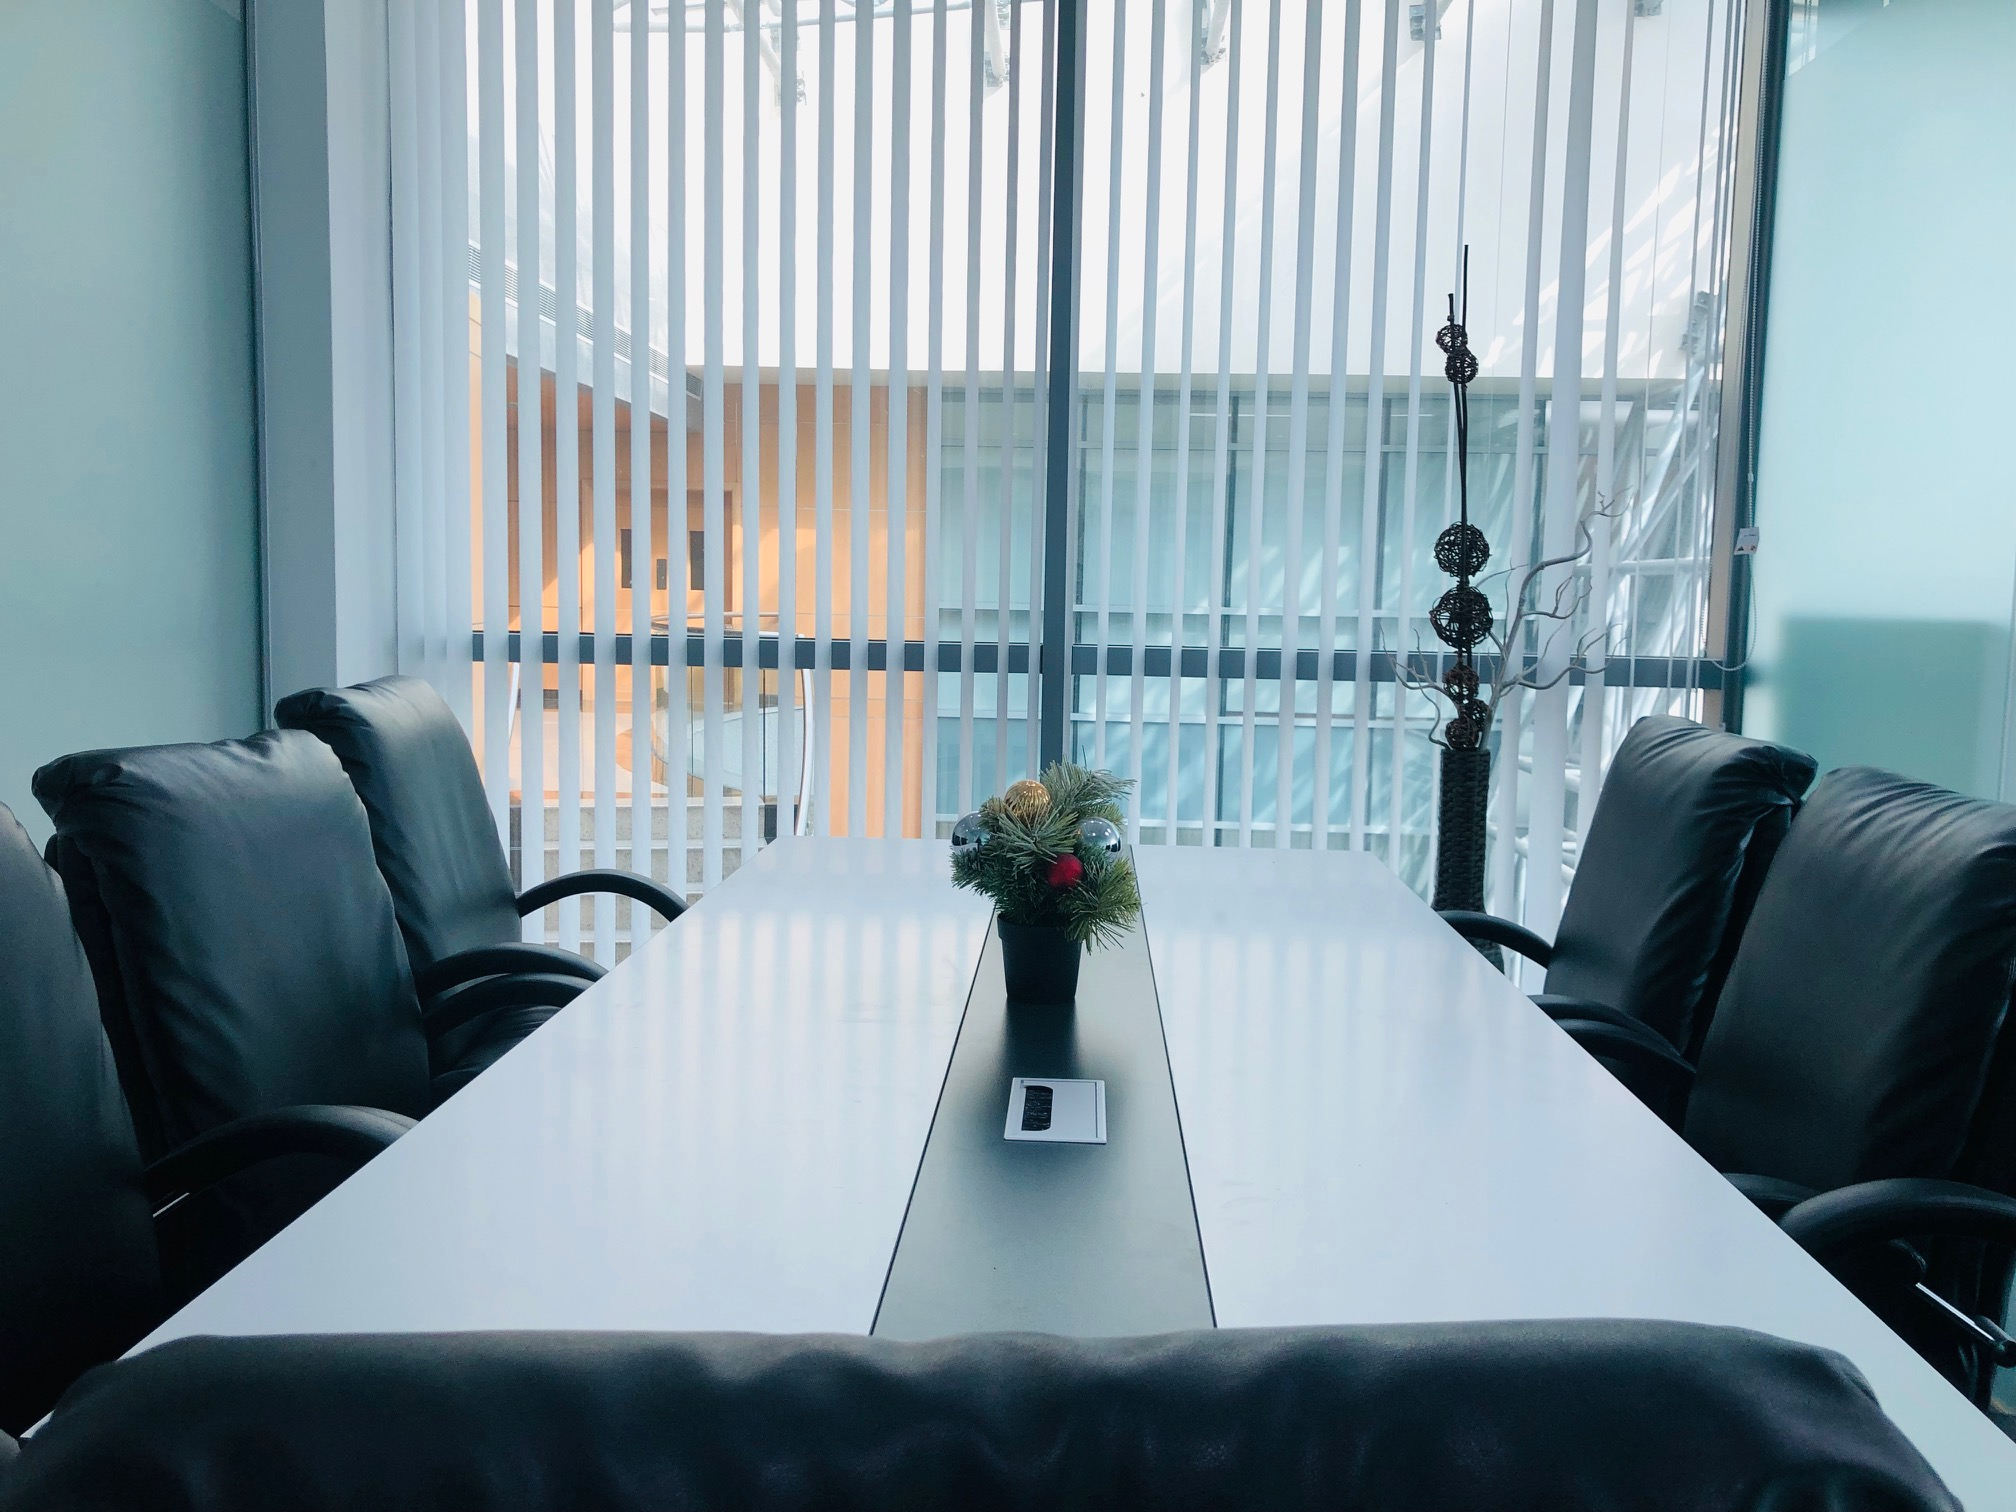 SPACIOUS PRIVATE OFFICE FOR ONLY AED 29,999/YEAR